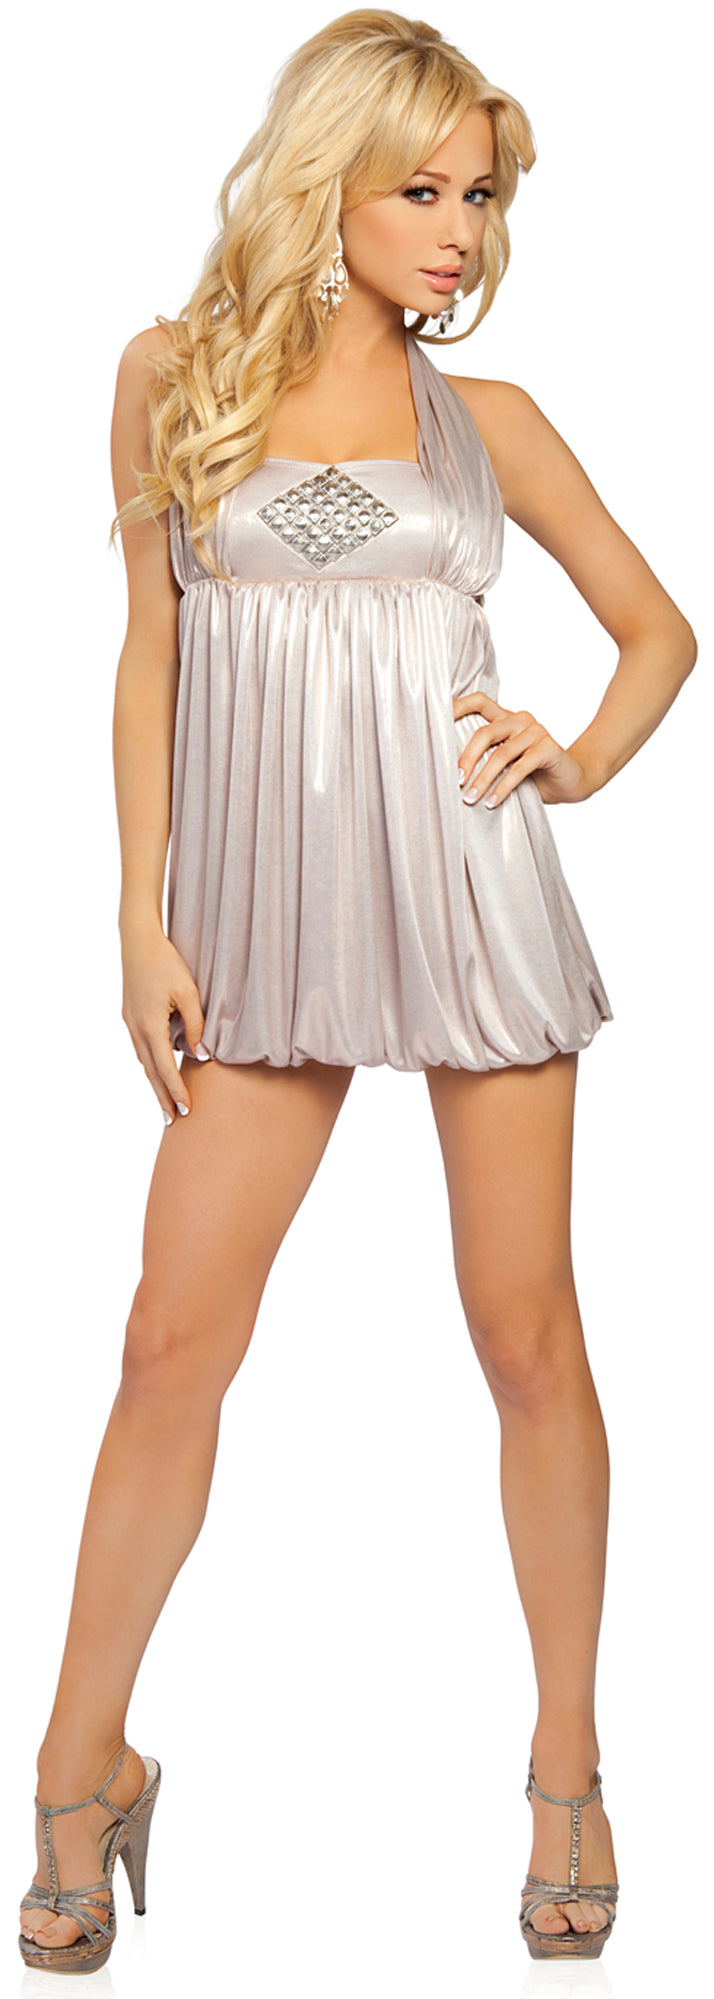 Halter Dress with Emblem Champagne Front RM2758